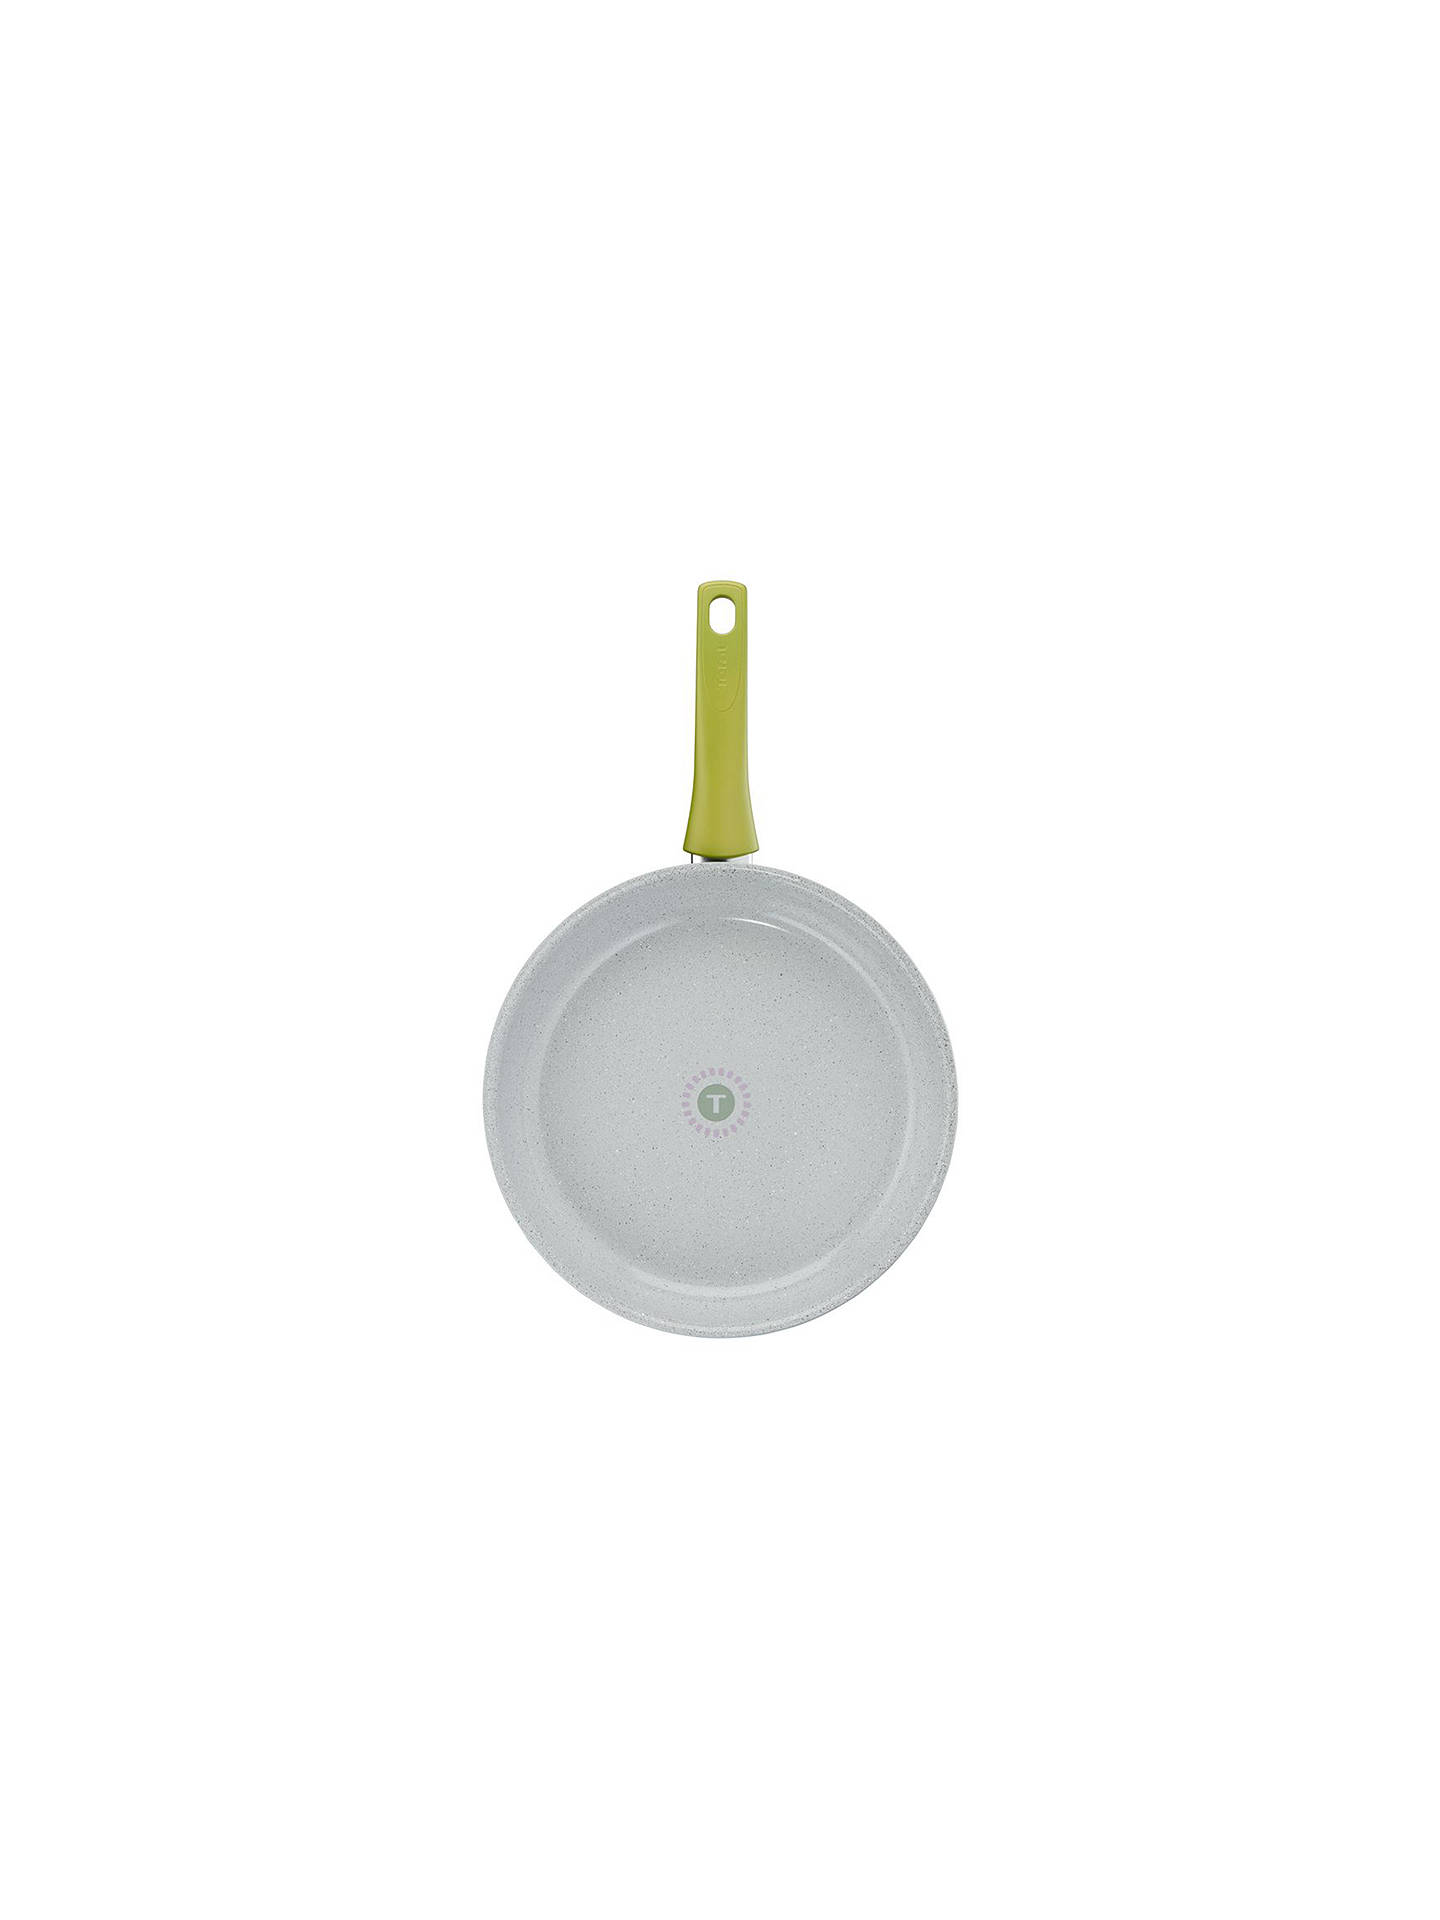 BuyTefal Non-Stick Veggie Frying Pan, 28cm, Grey/Green Online at johnlewis.com